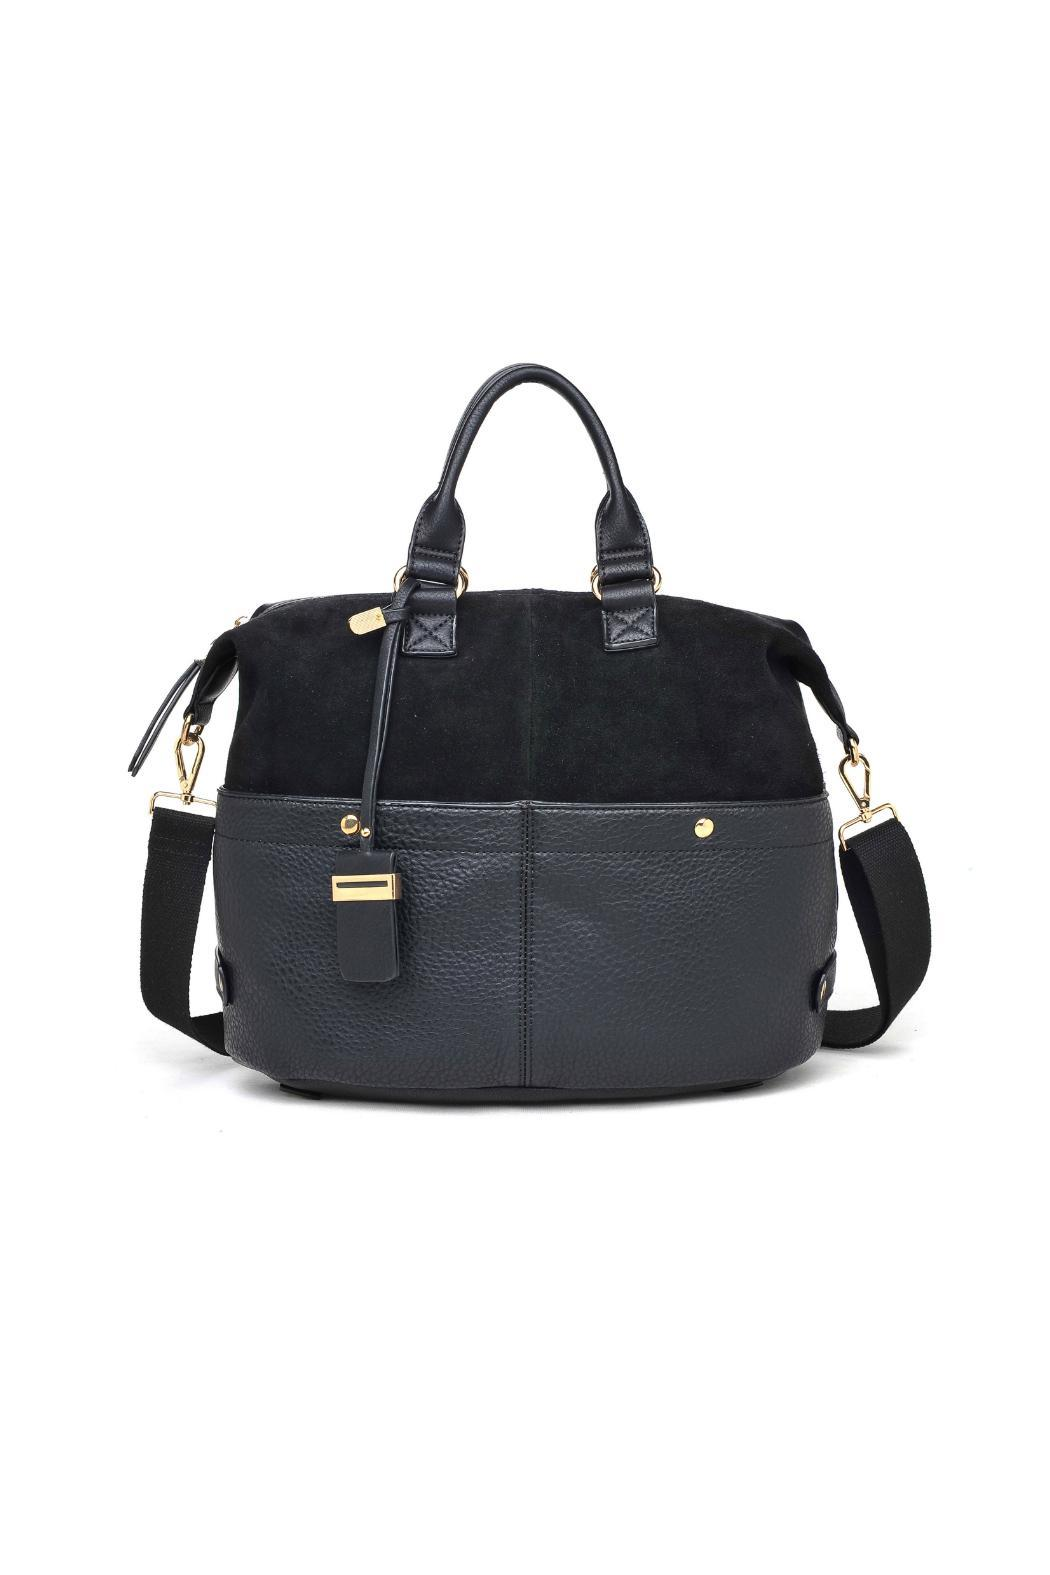 Moda Luxe London Satchel from New York by Let's Bag It — Shoptiques